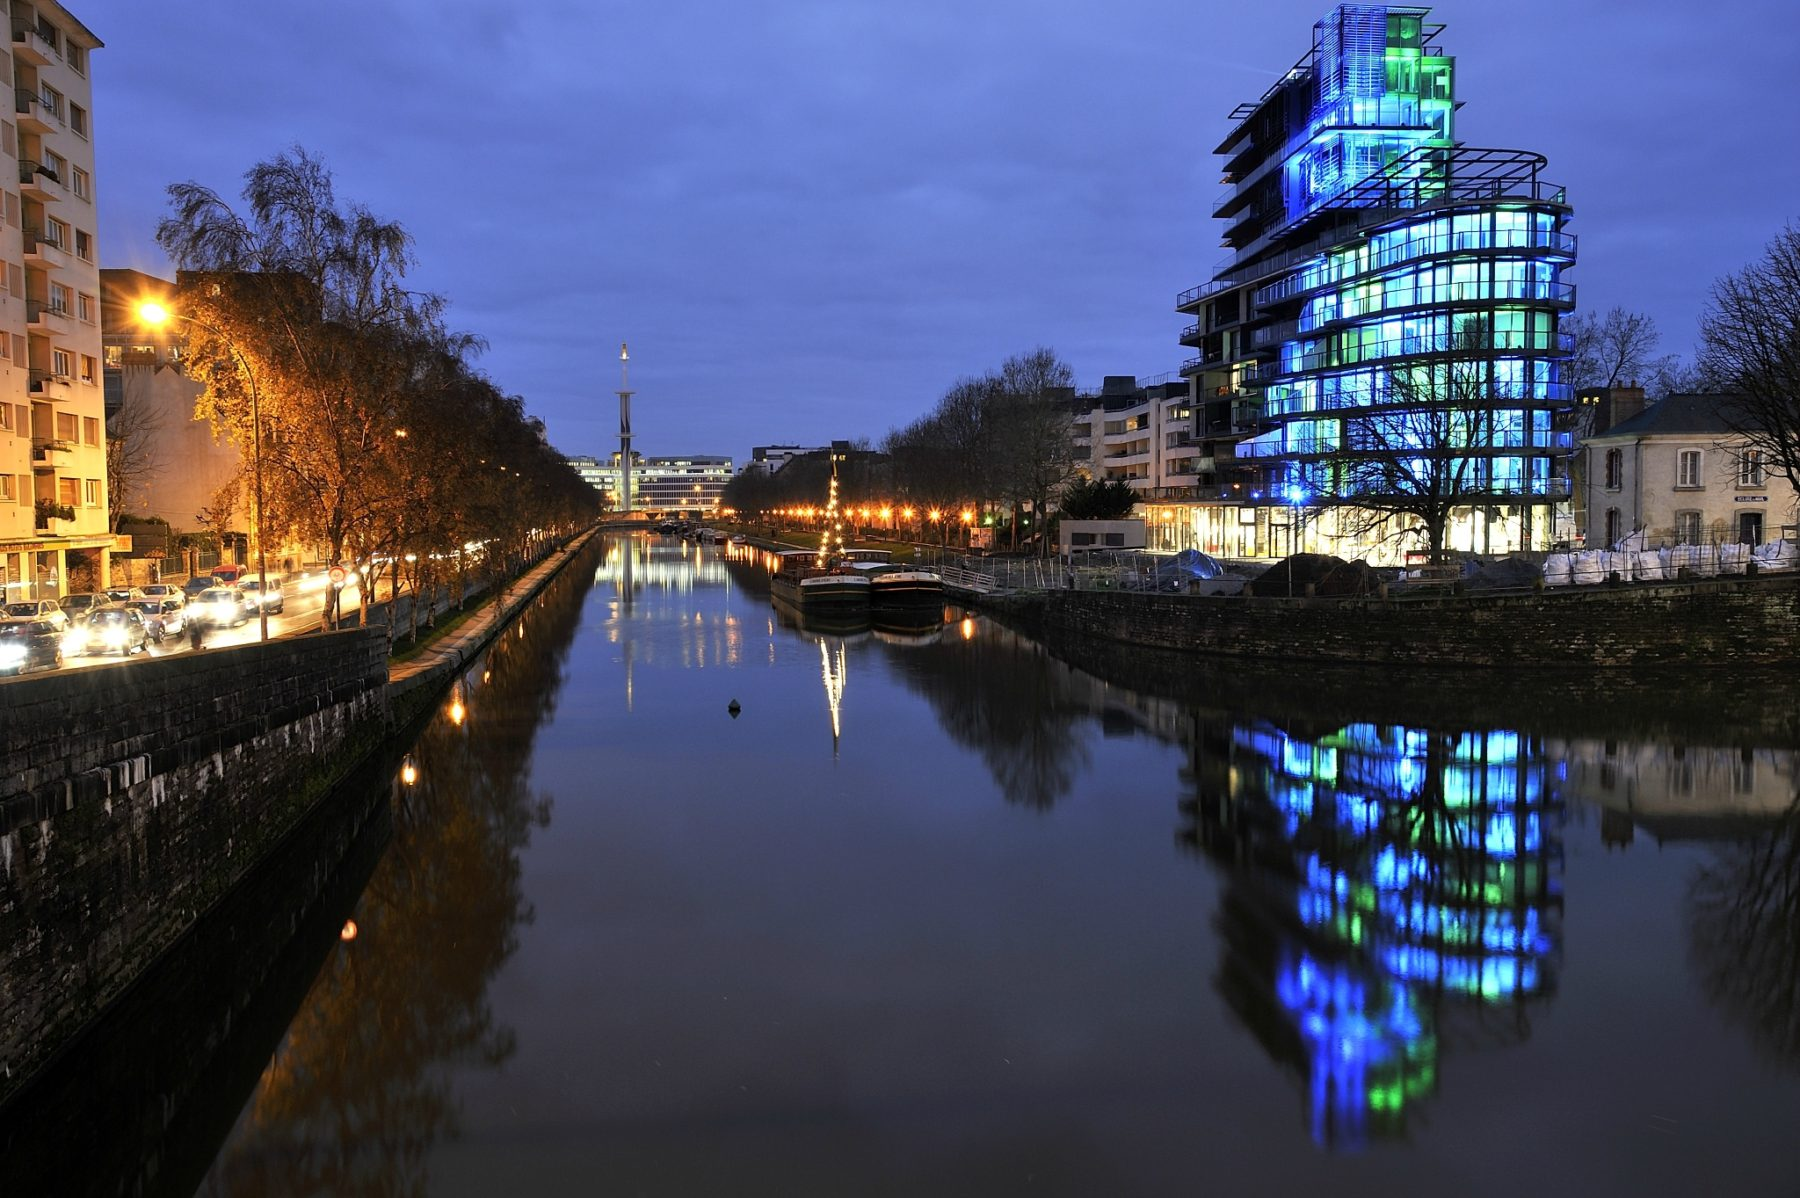 Cap Mail by night, Rennes - Alain Rehault